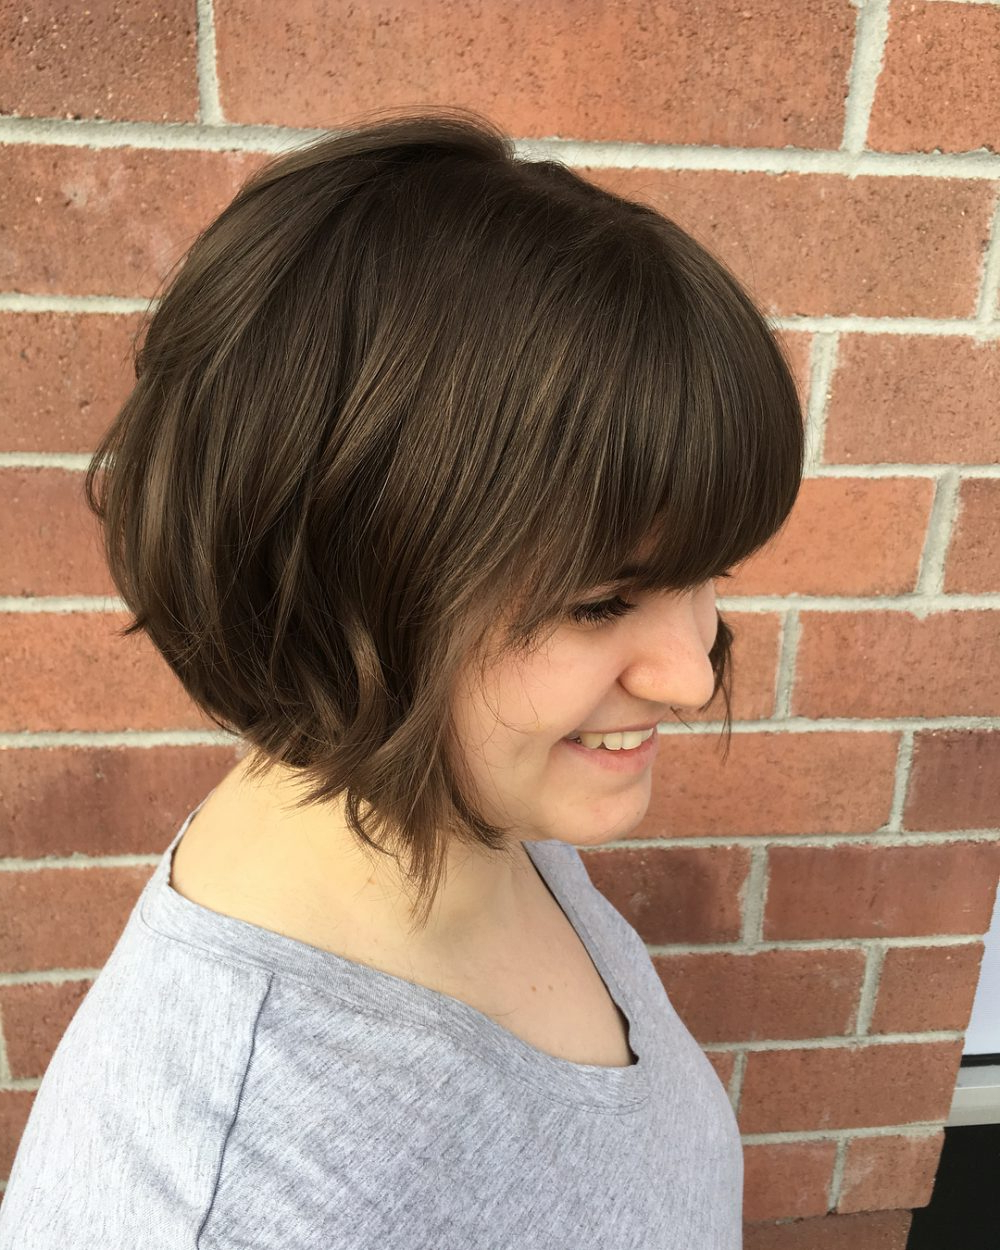 34 Greatest Short Haircuts And Hairstyles For Thick Hair For 2018 With Regard To Short Haircuts Bobs Thick Hair (View 11 of 25)